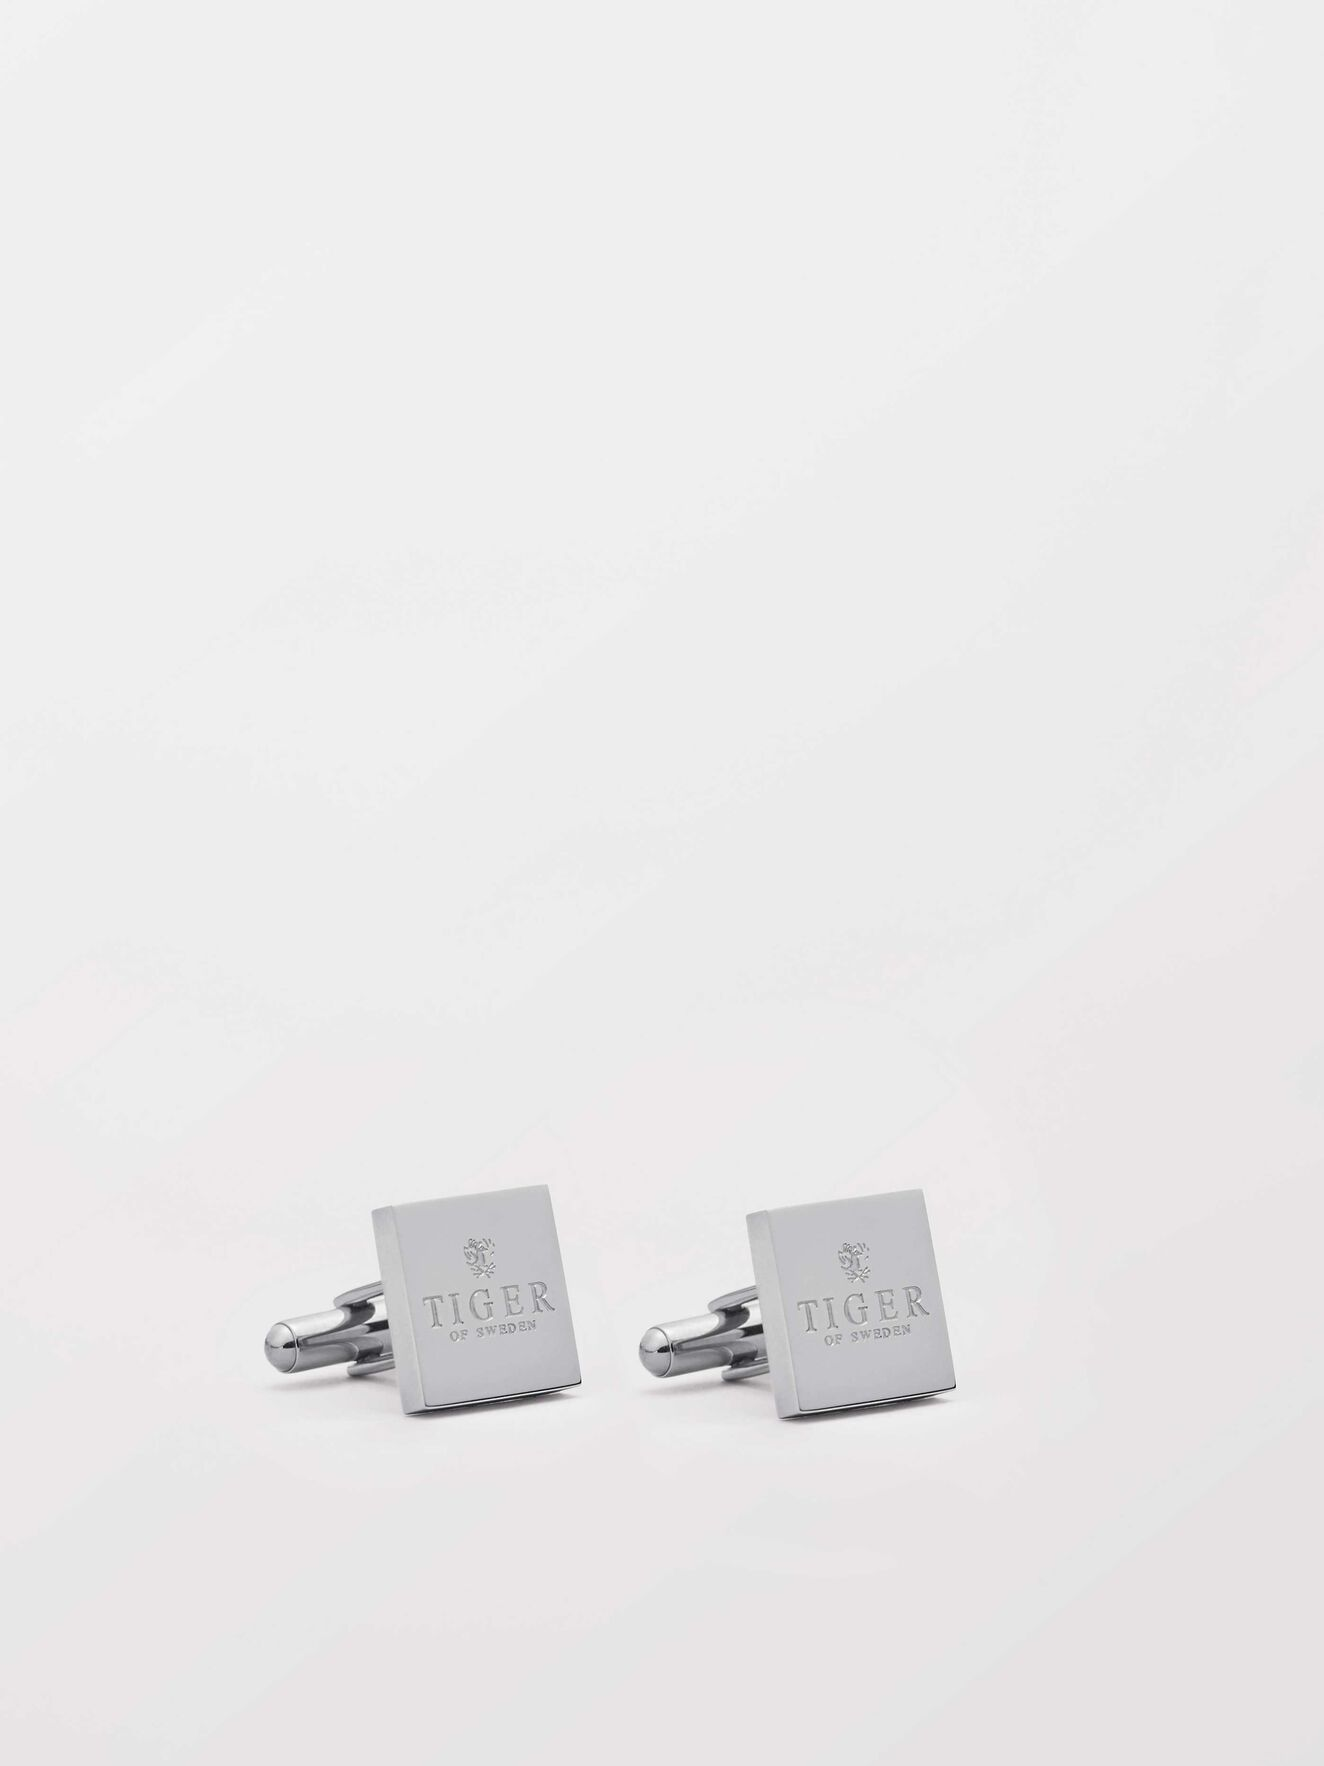 Franscesco Cufflinks in Pattern from Tiger of Sweden